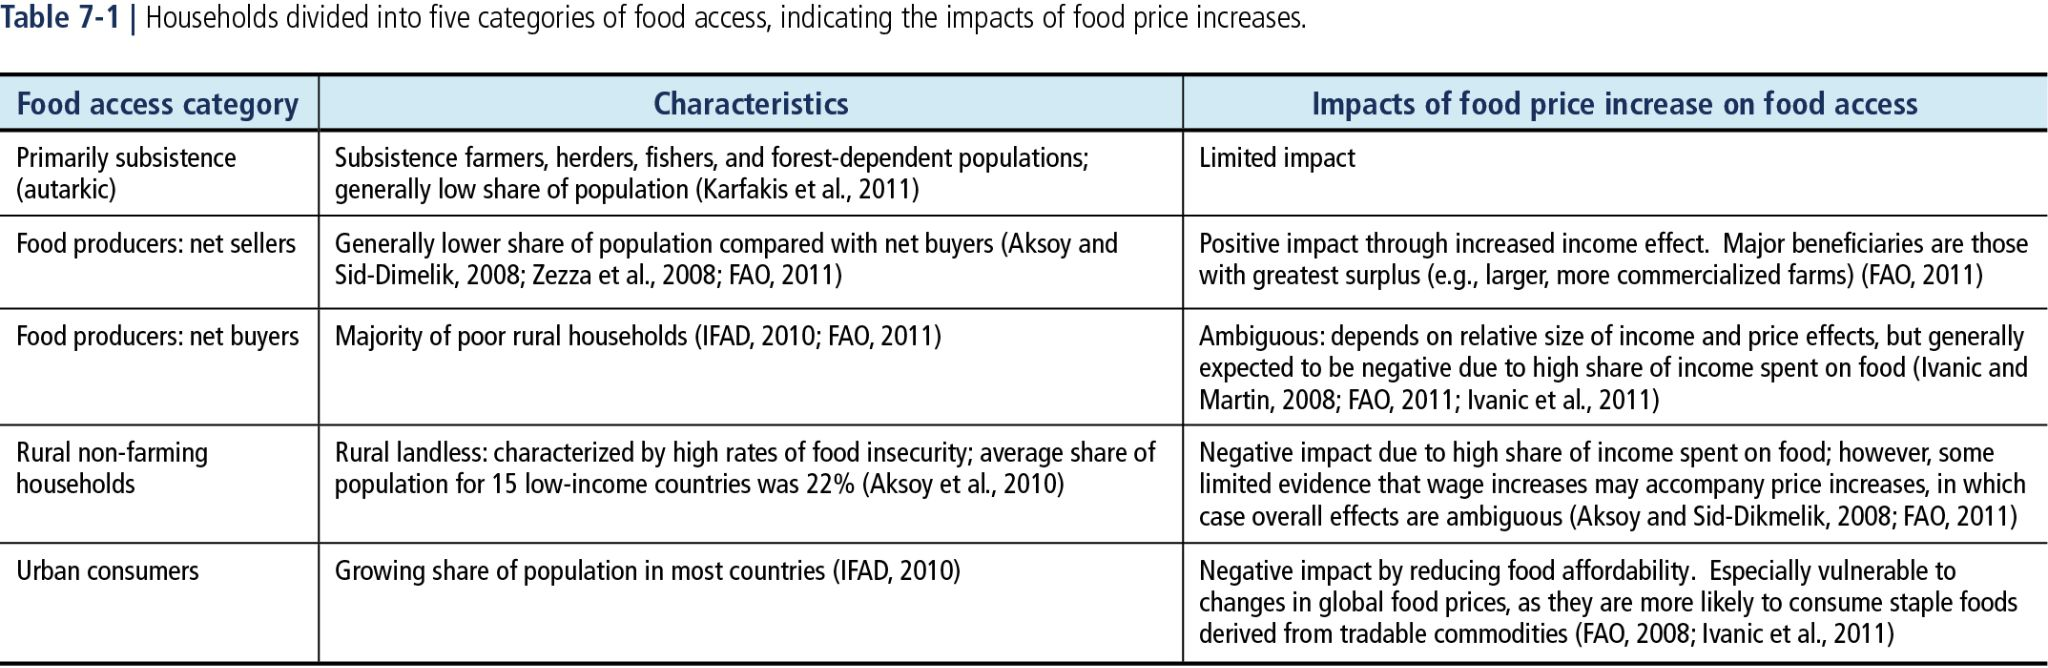 IPCC 2018 Report: Food Security and Food Production Systems table of food access and impact of food price increase on it.